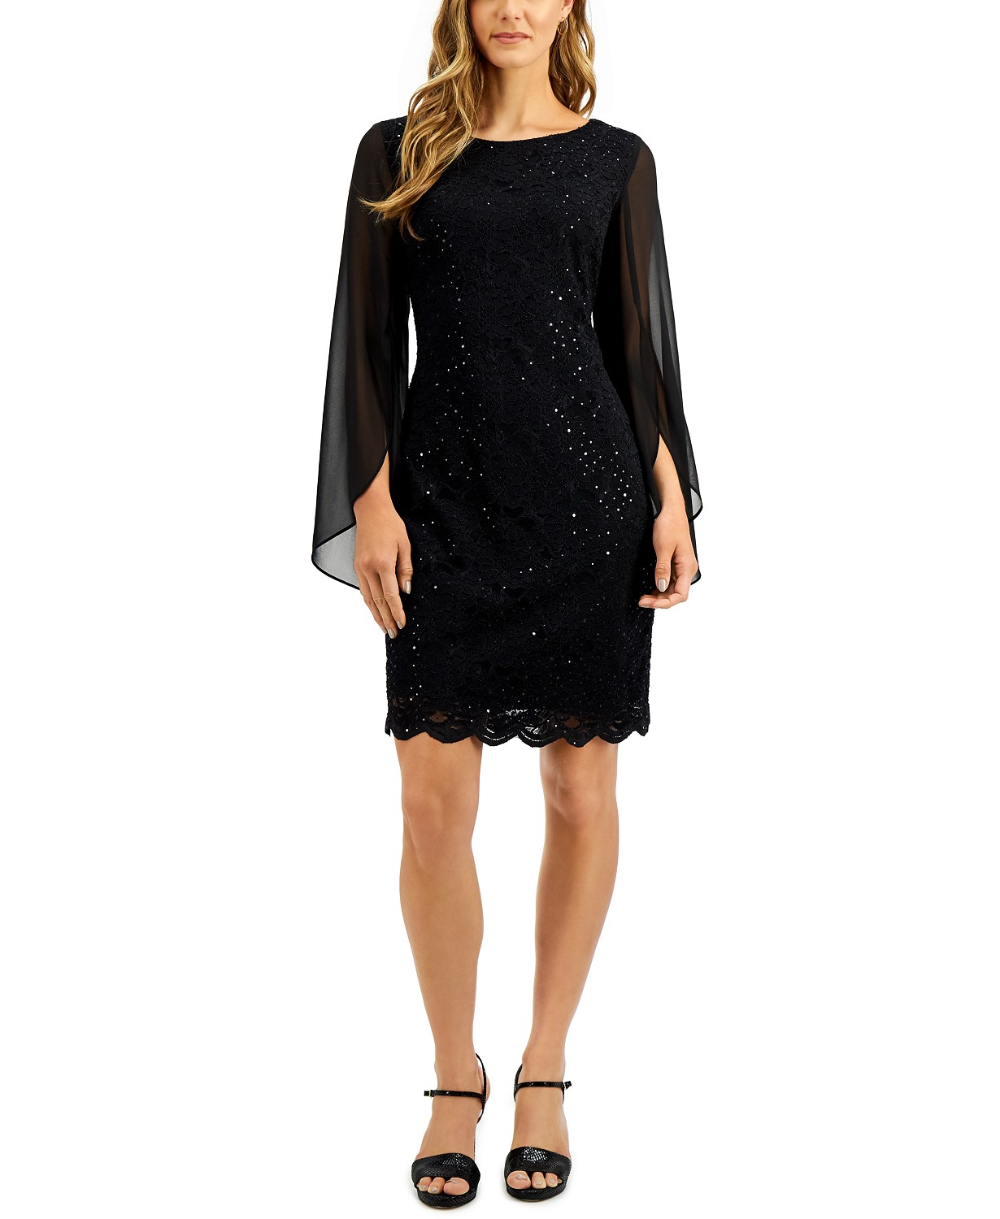 Connected Flutter Sleeve Sequined Lace Dress Reviews Dresses Women Macy S In 2020 Lace Dress Black Lace Dress Review Dresses,Stella York Wedding Dress Prices